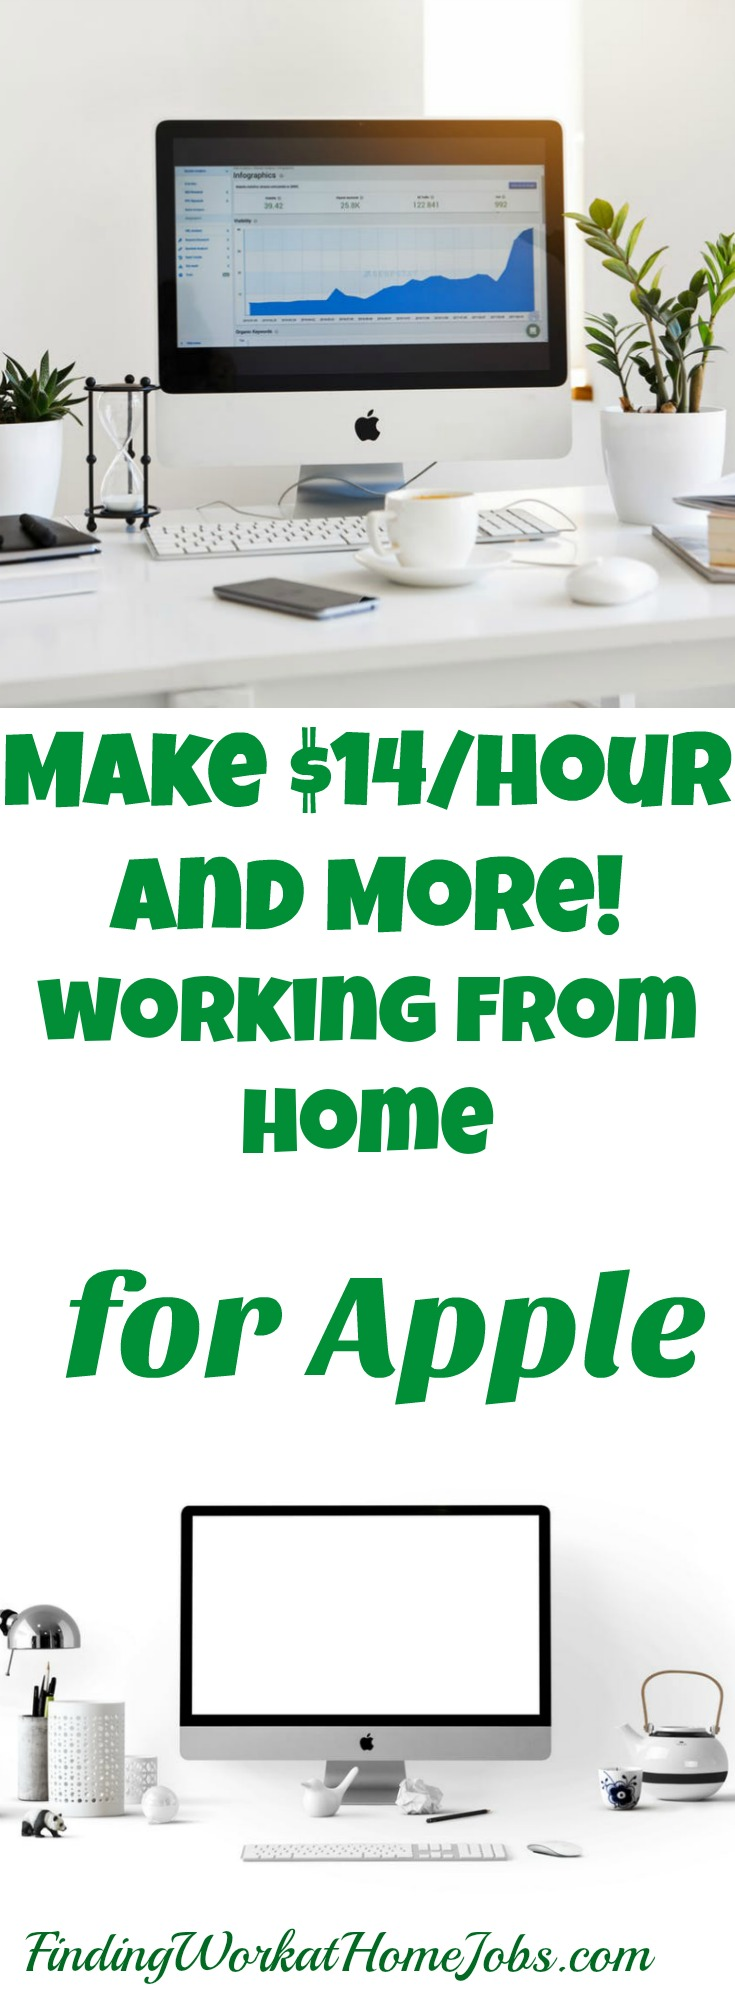 Work from home for apple